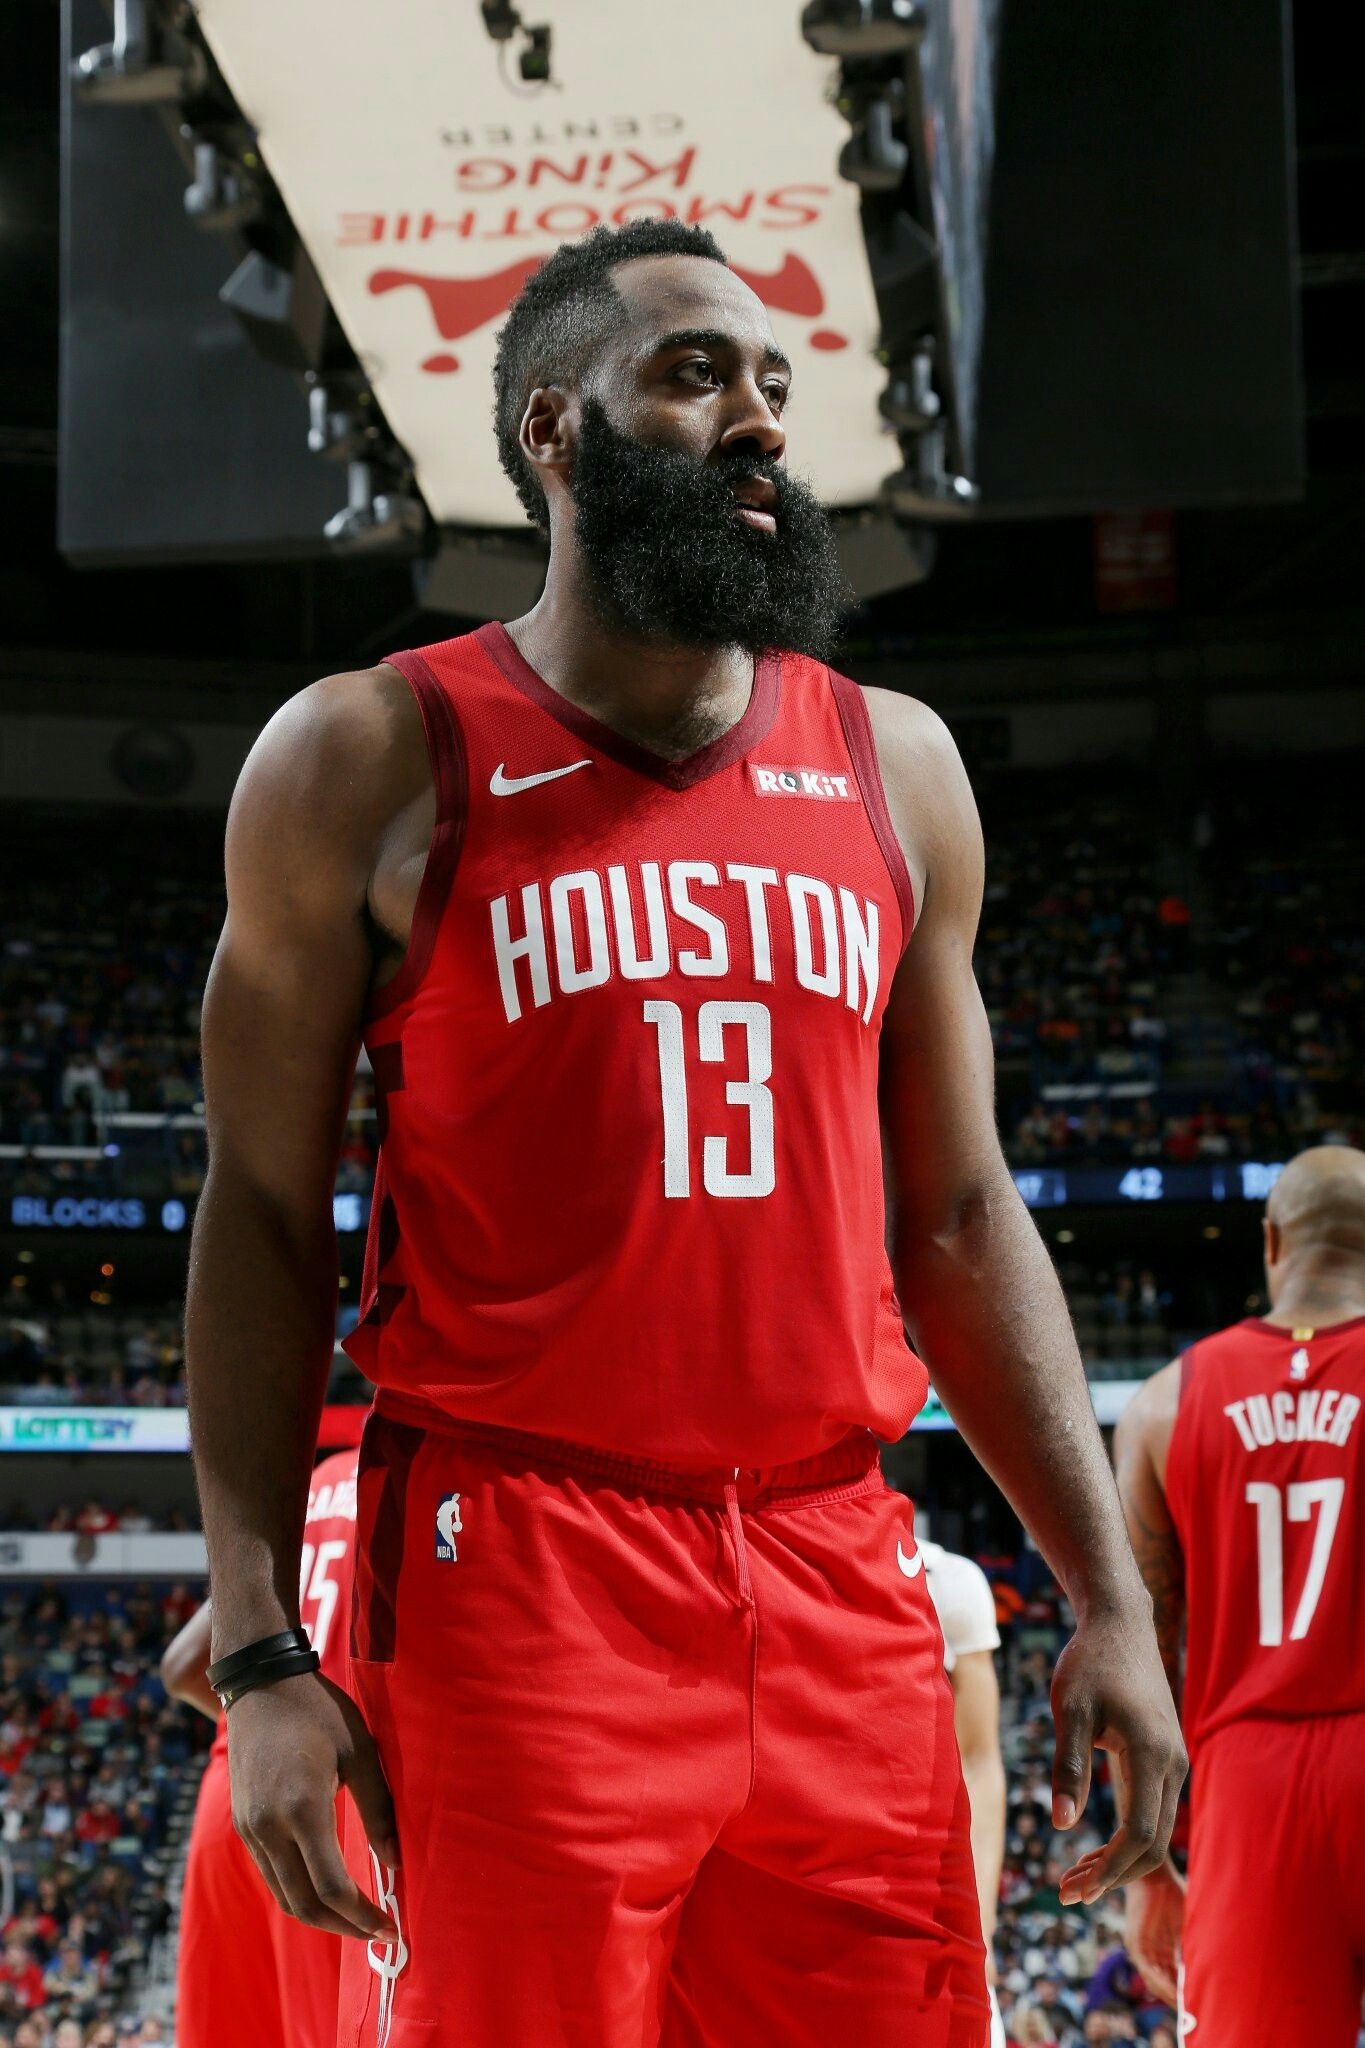 James Harden James Harden Nba Legends Nba League